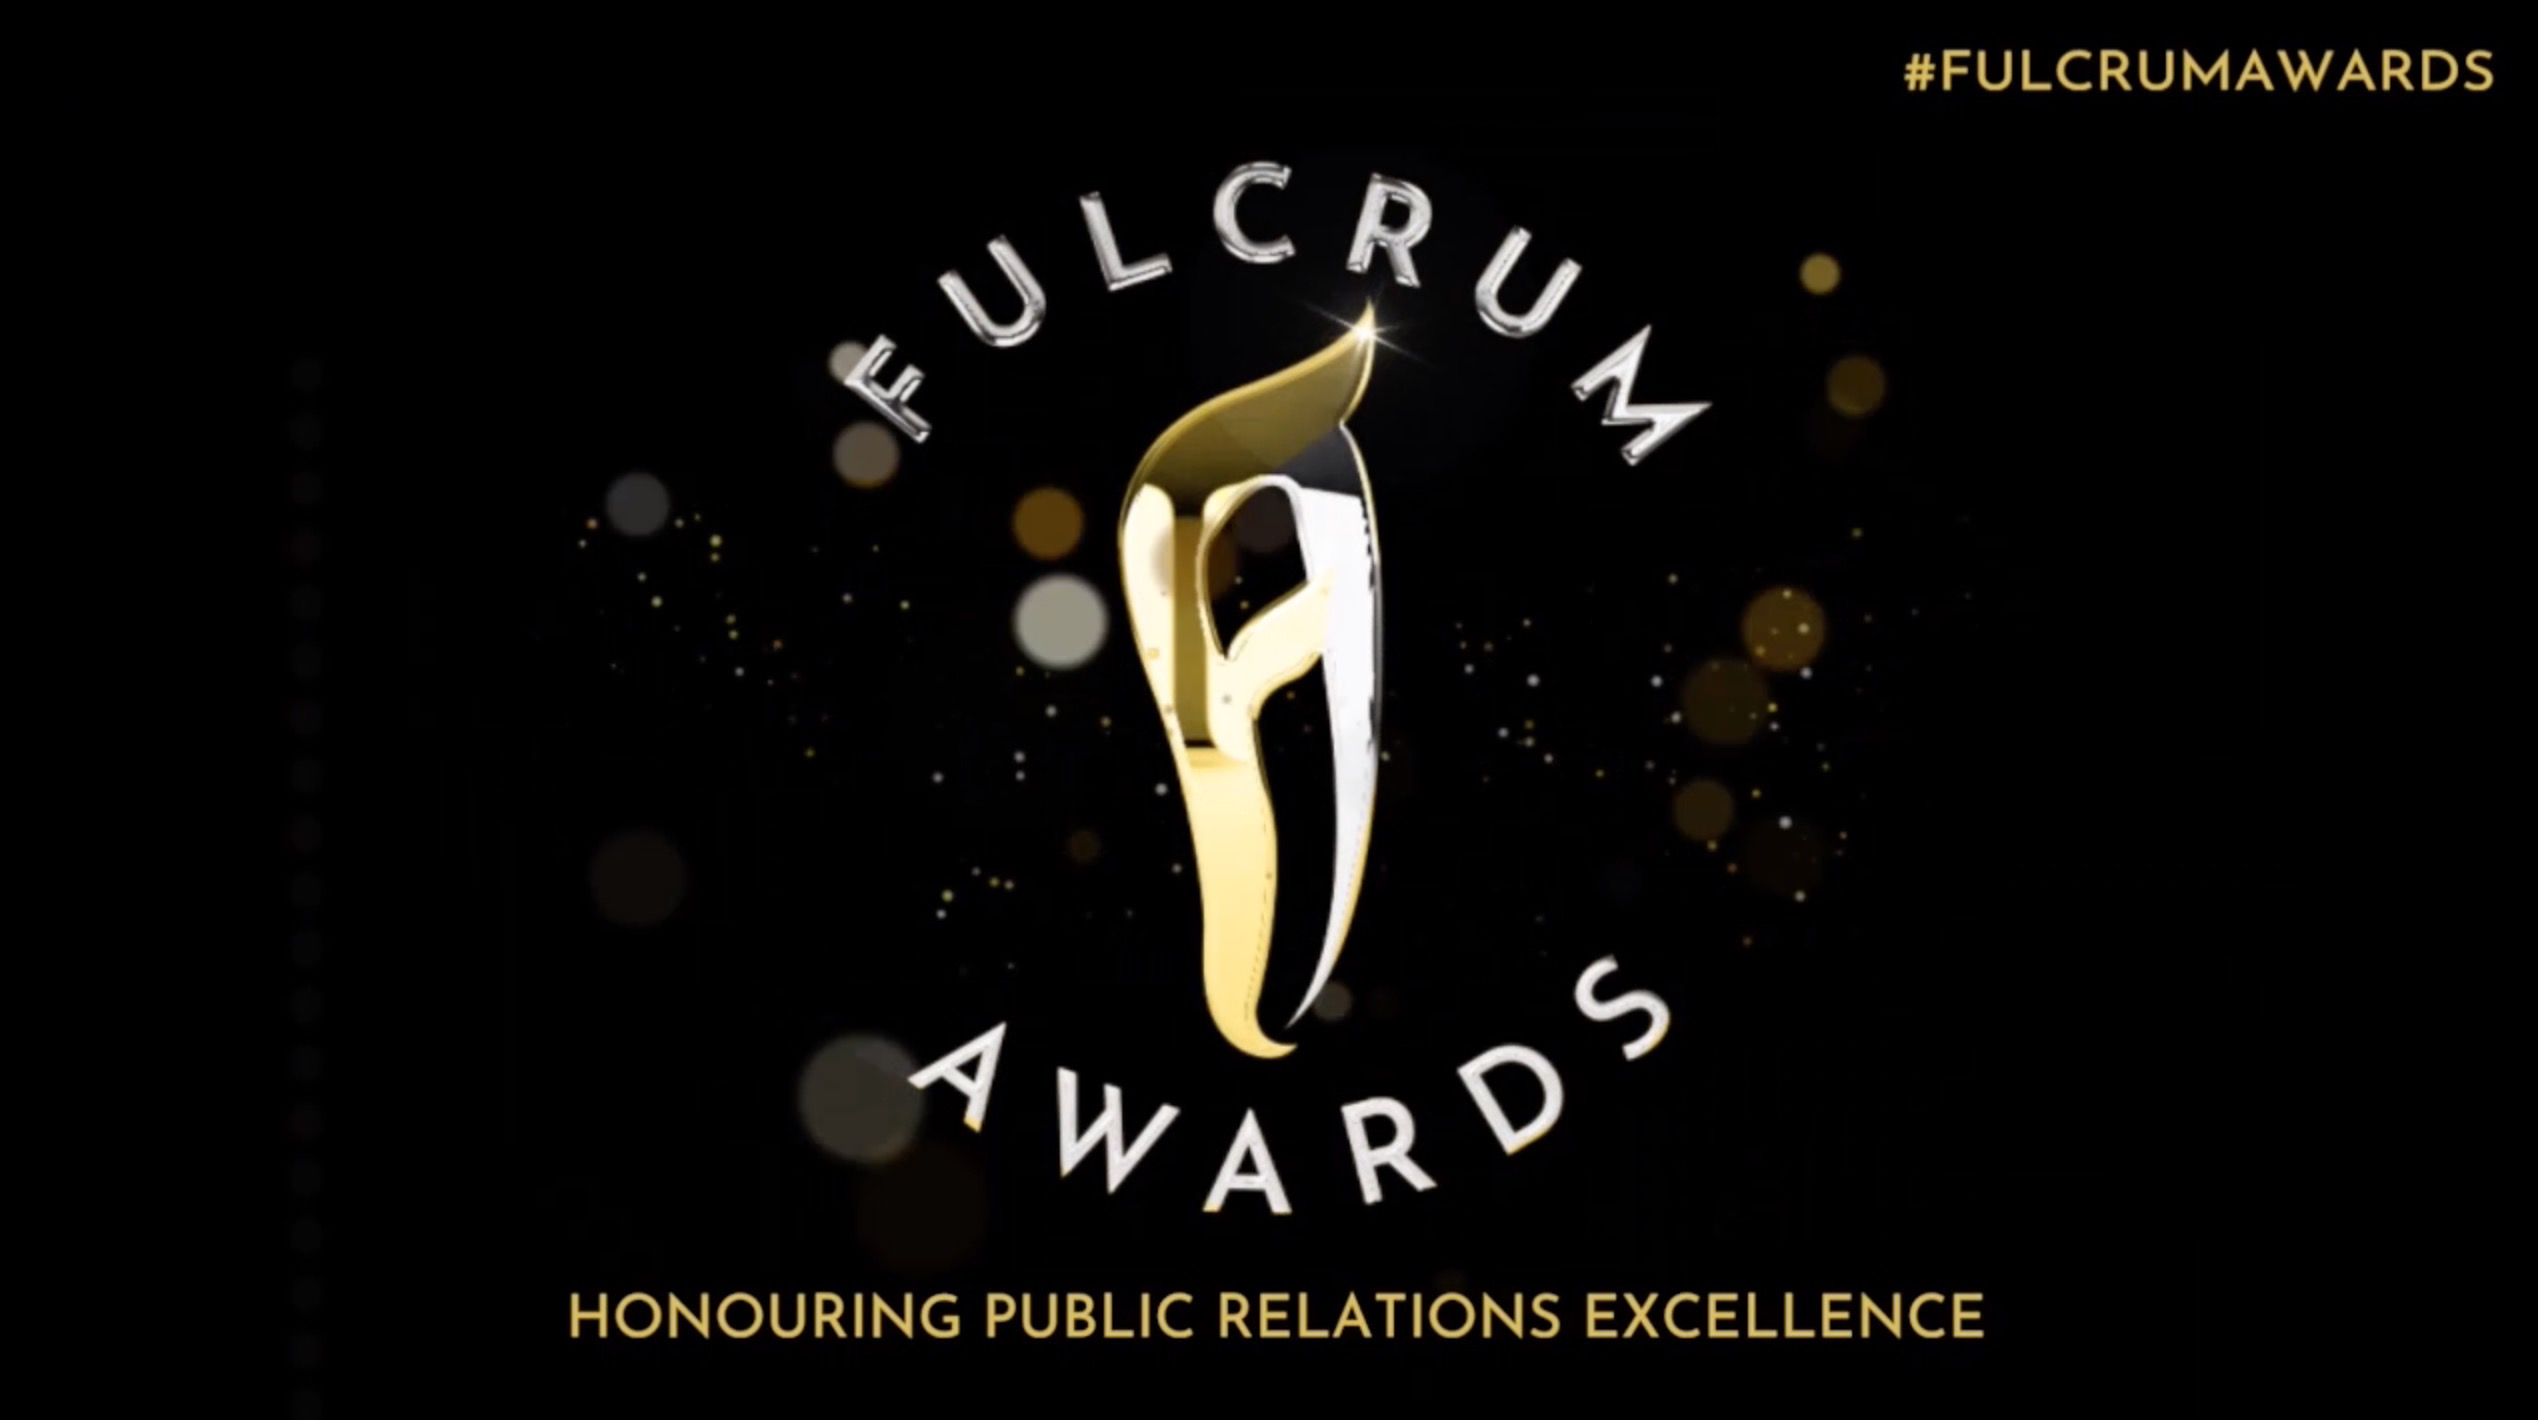 Fulcrum Awards Event Branding